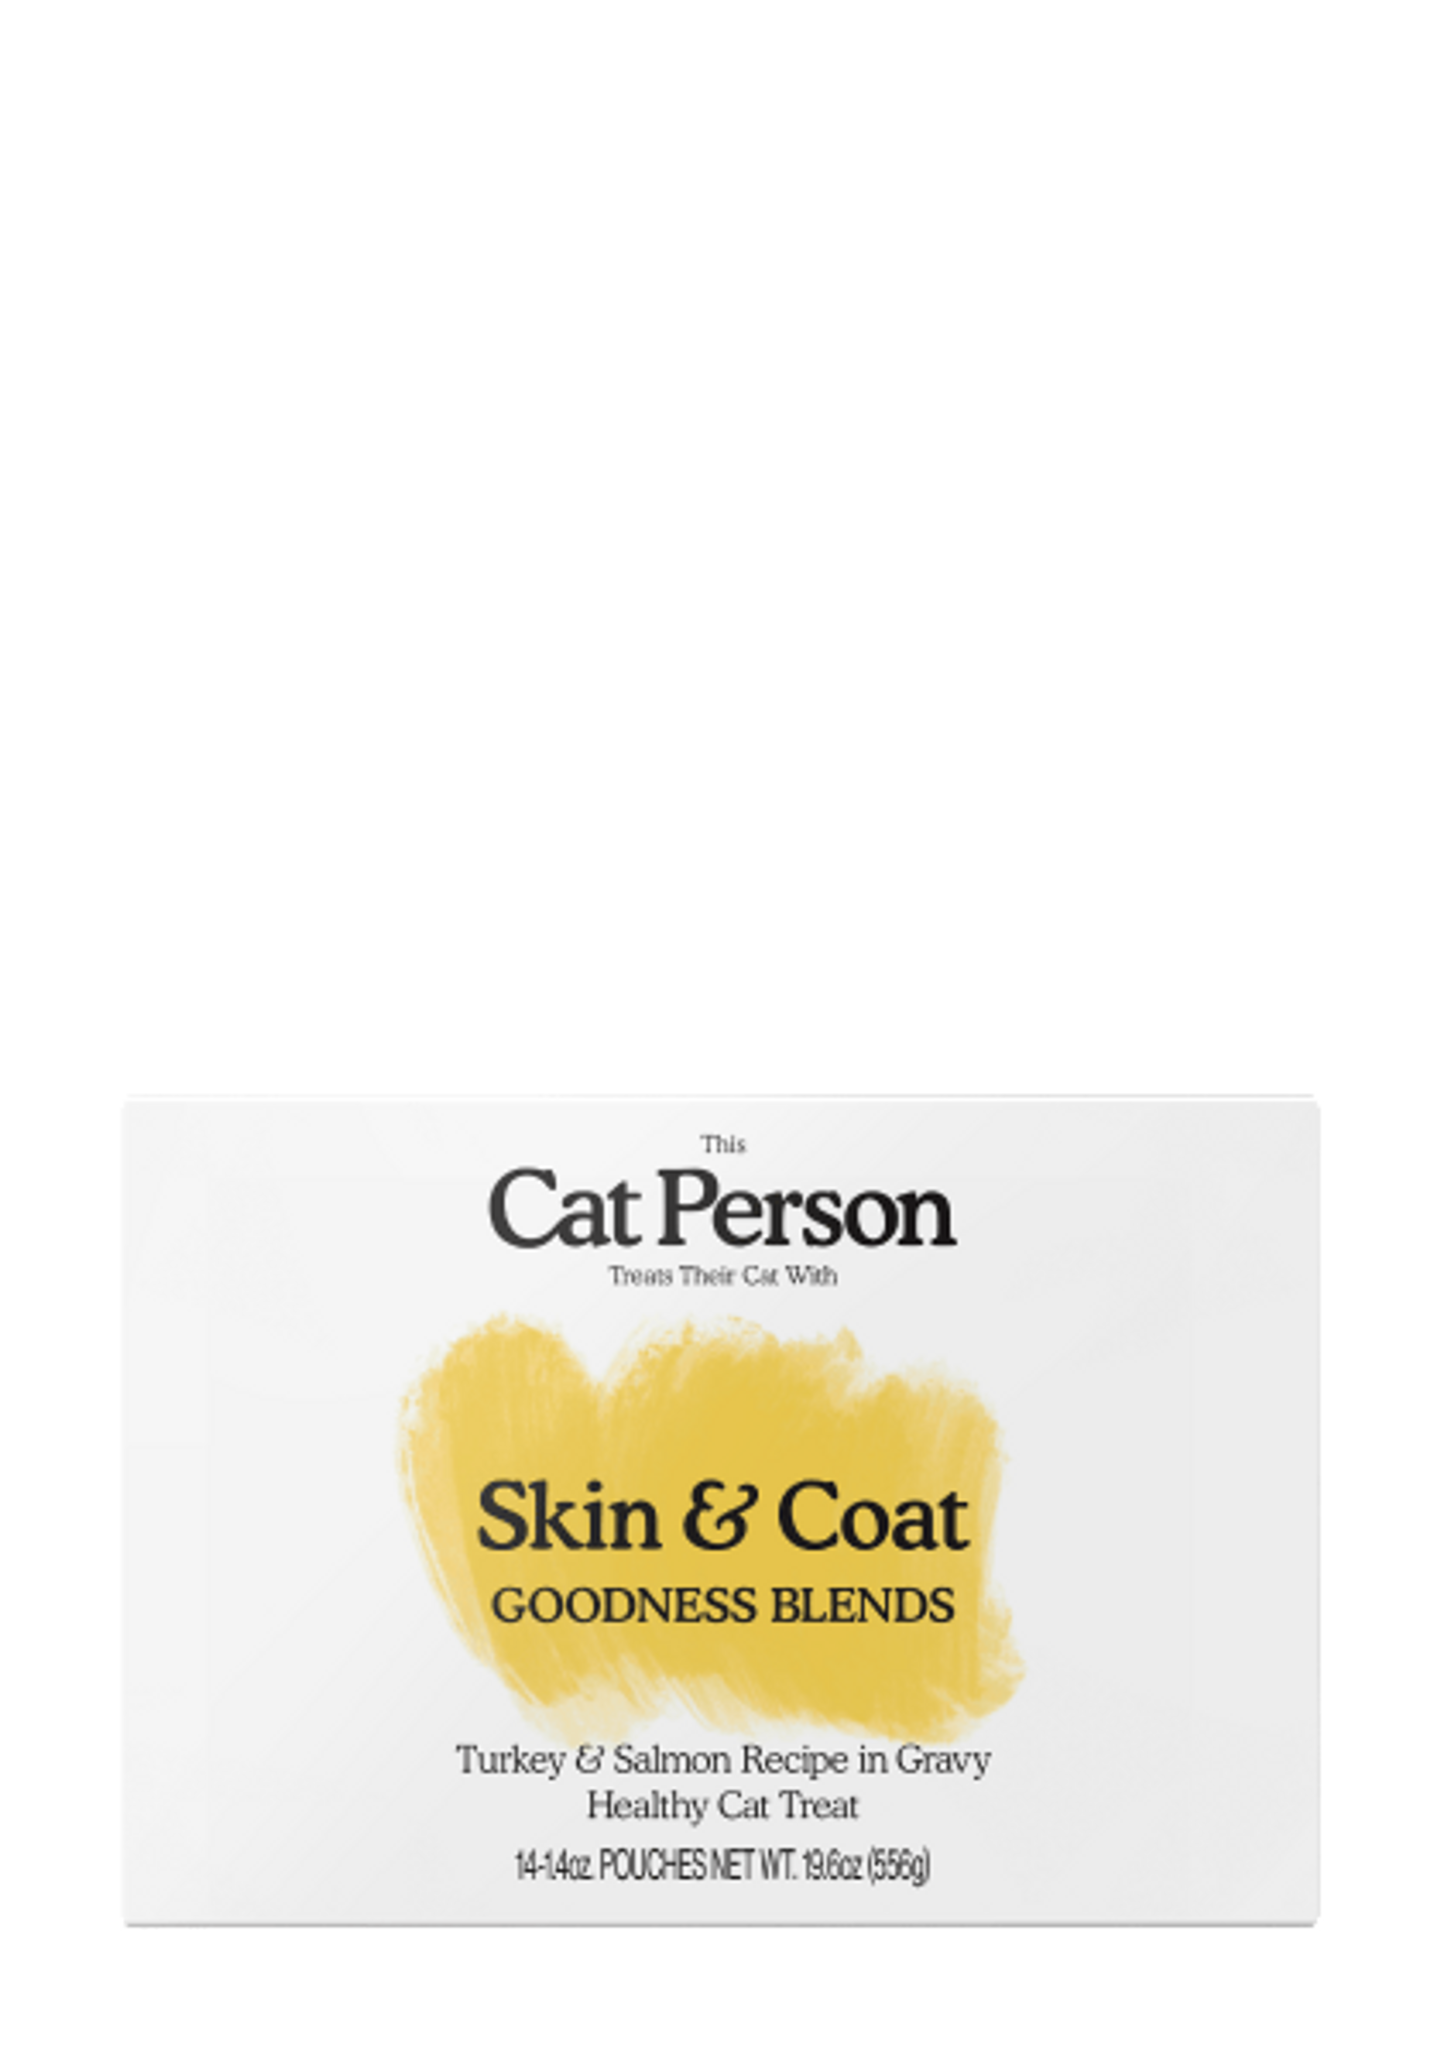 Box of Cat Person Skin & Coat Goodness Blends healthy cat treat